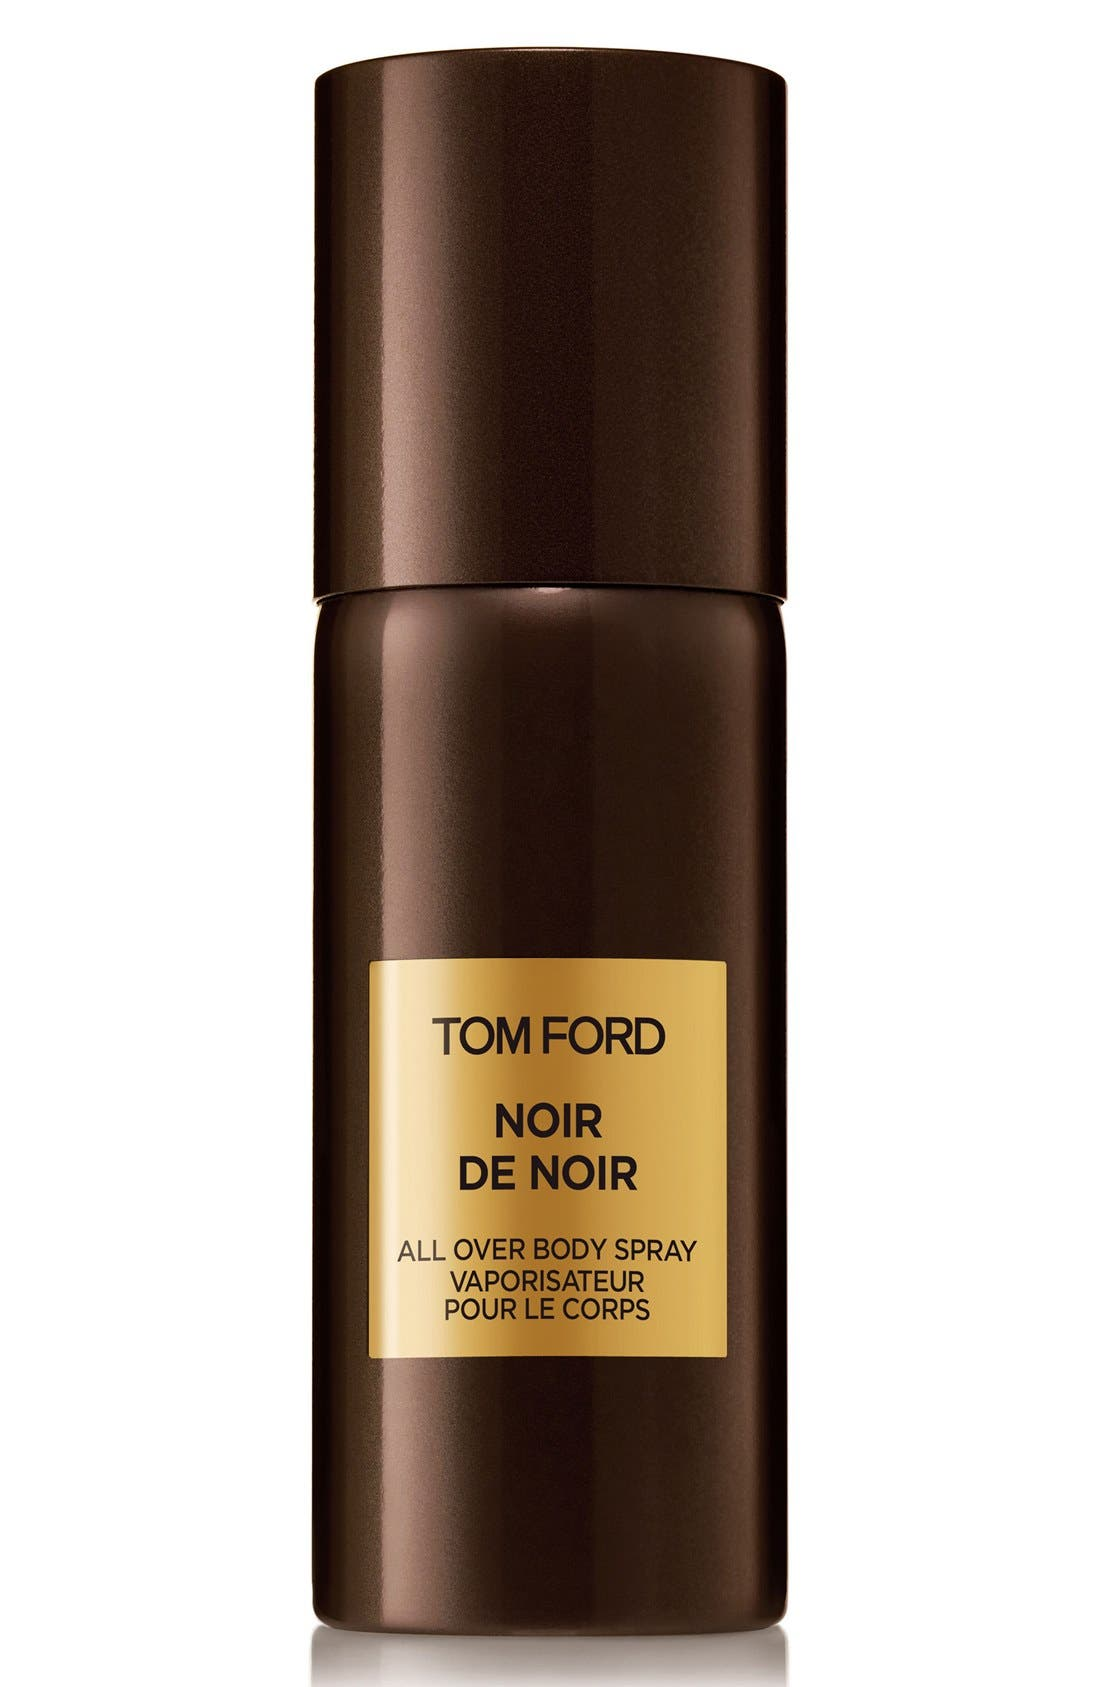 Tom Ford Private Blend Noir de Noir All Over Body Spray